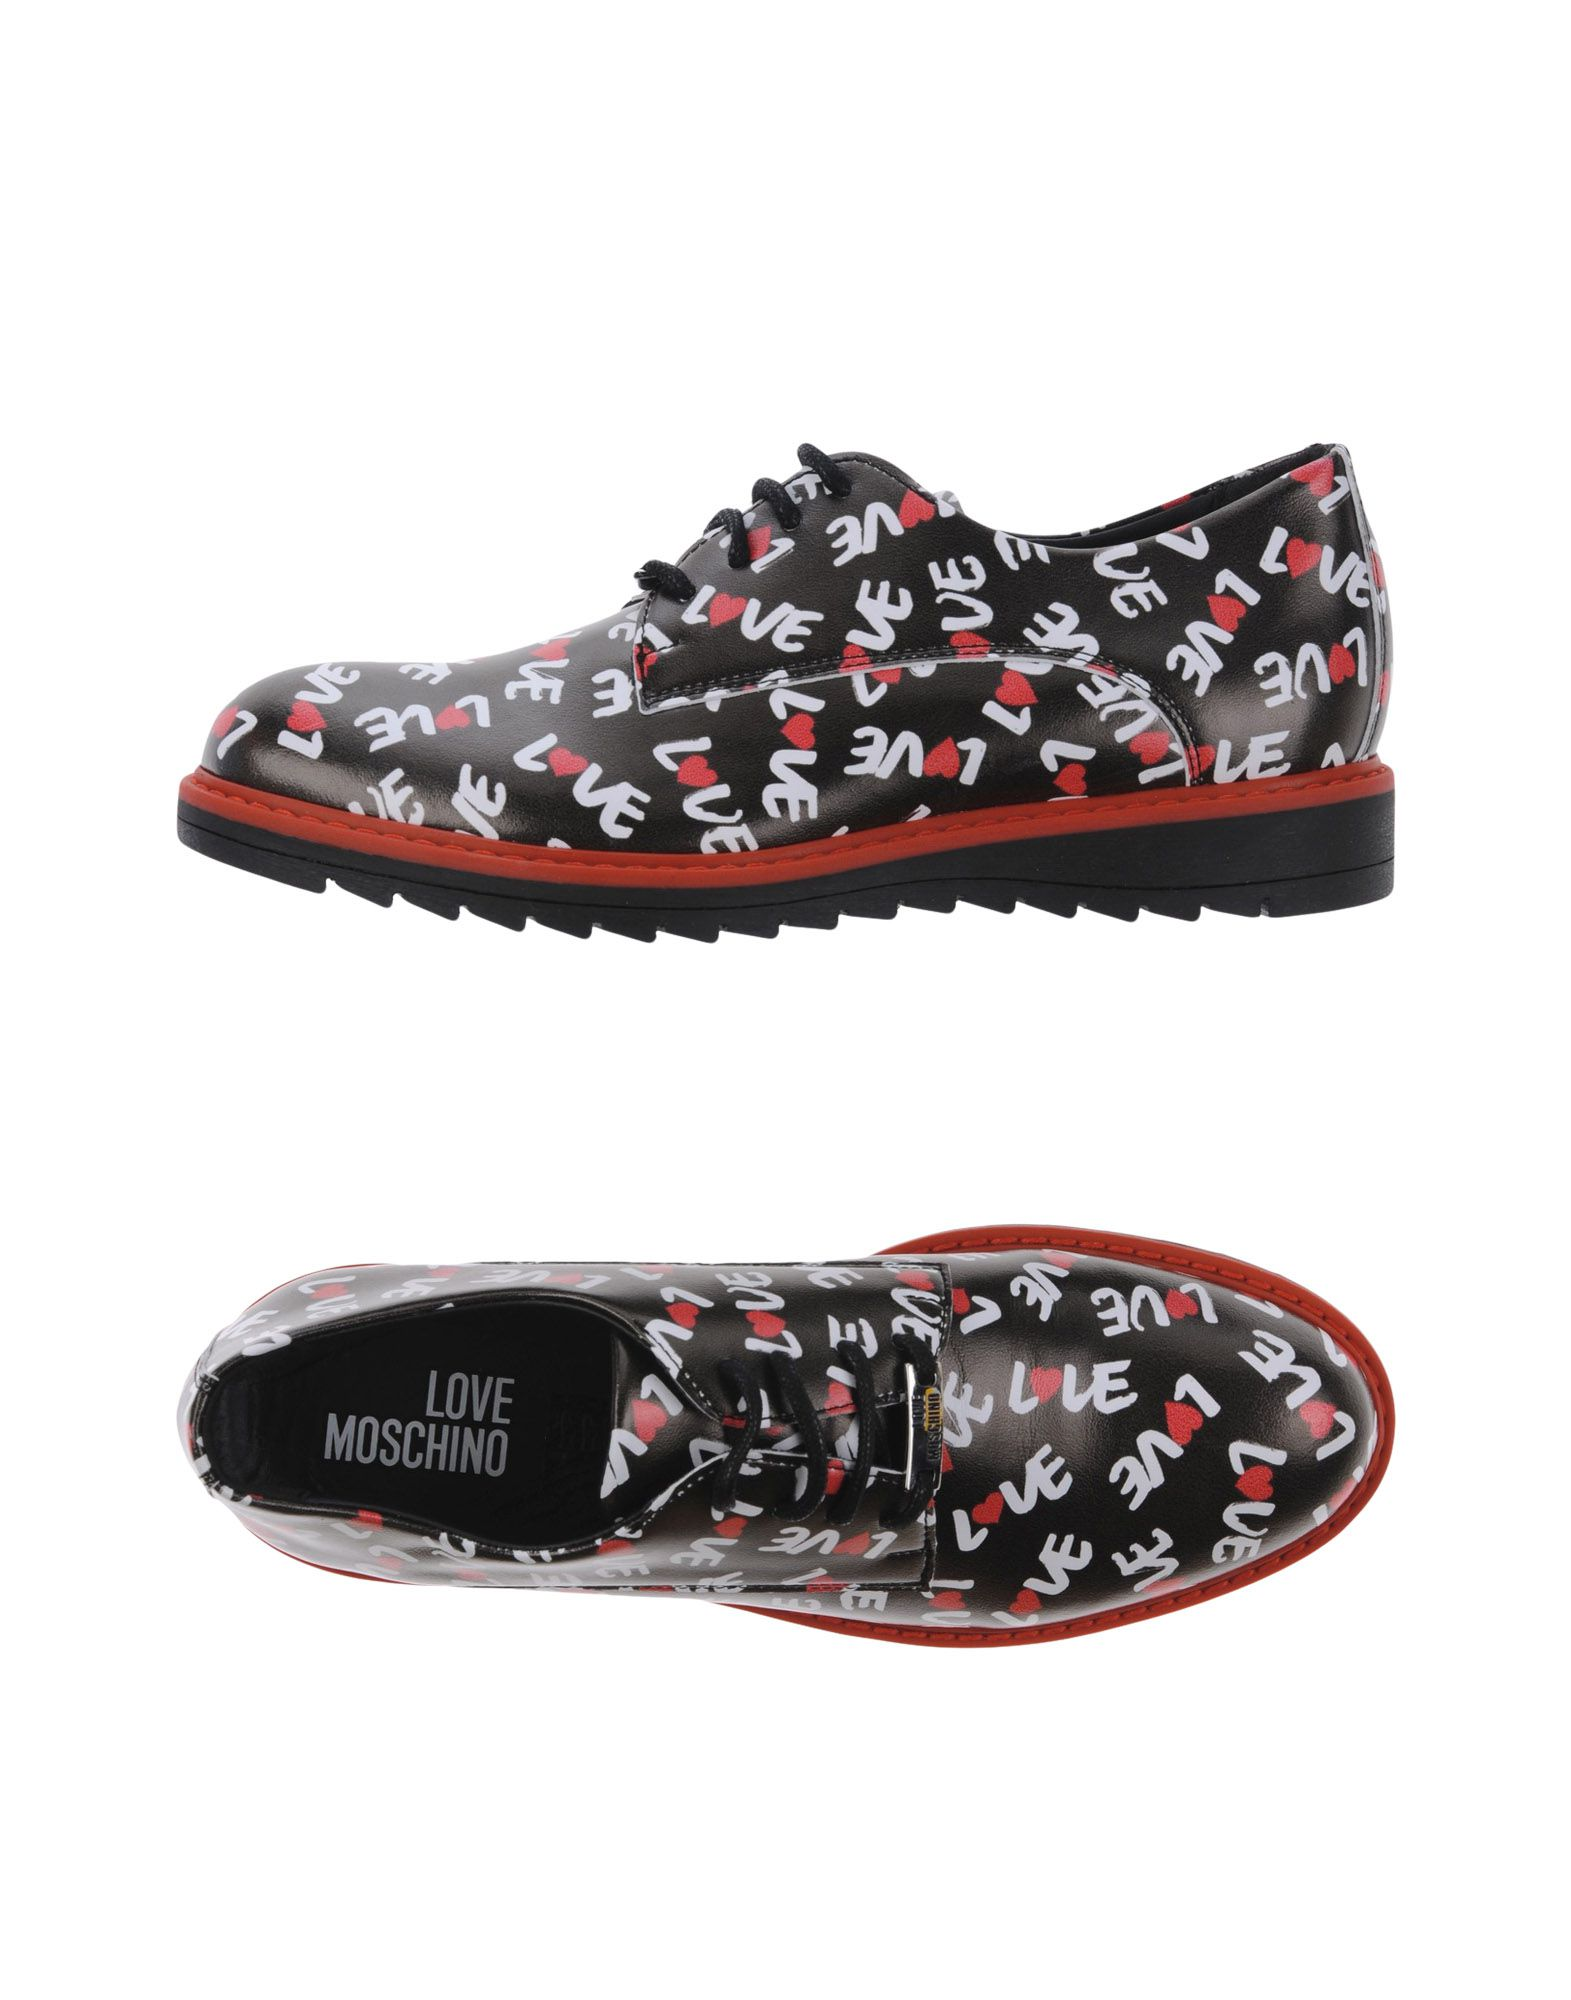 Chaussures À Lacets Love Moschino Femme - Chaussures À Lacets Love Moschino sur